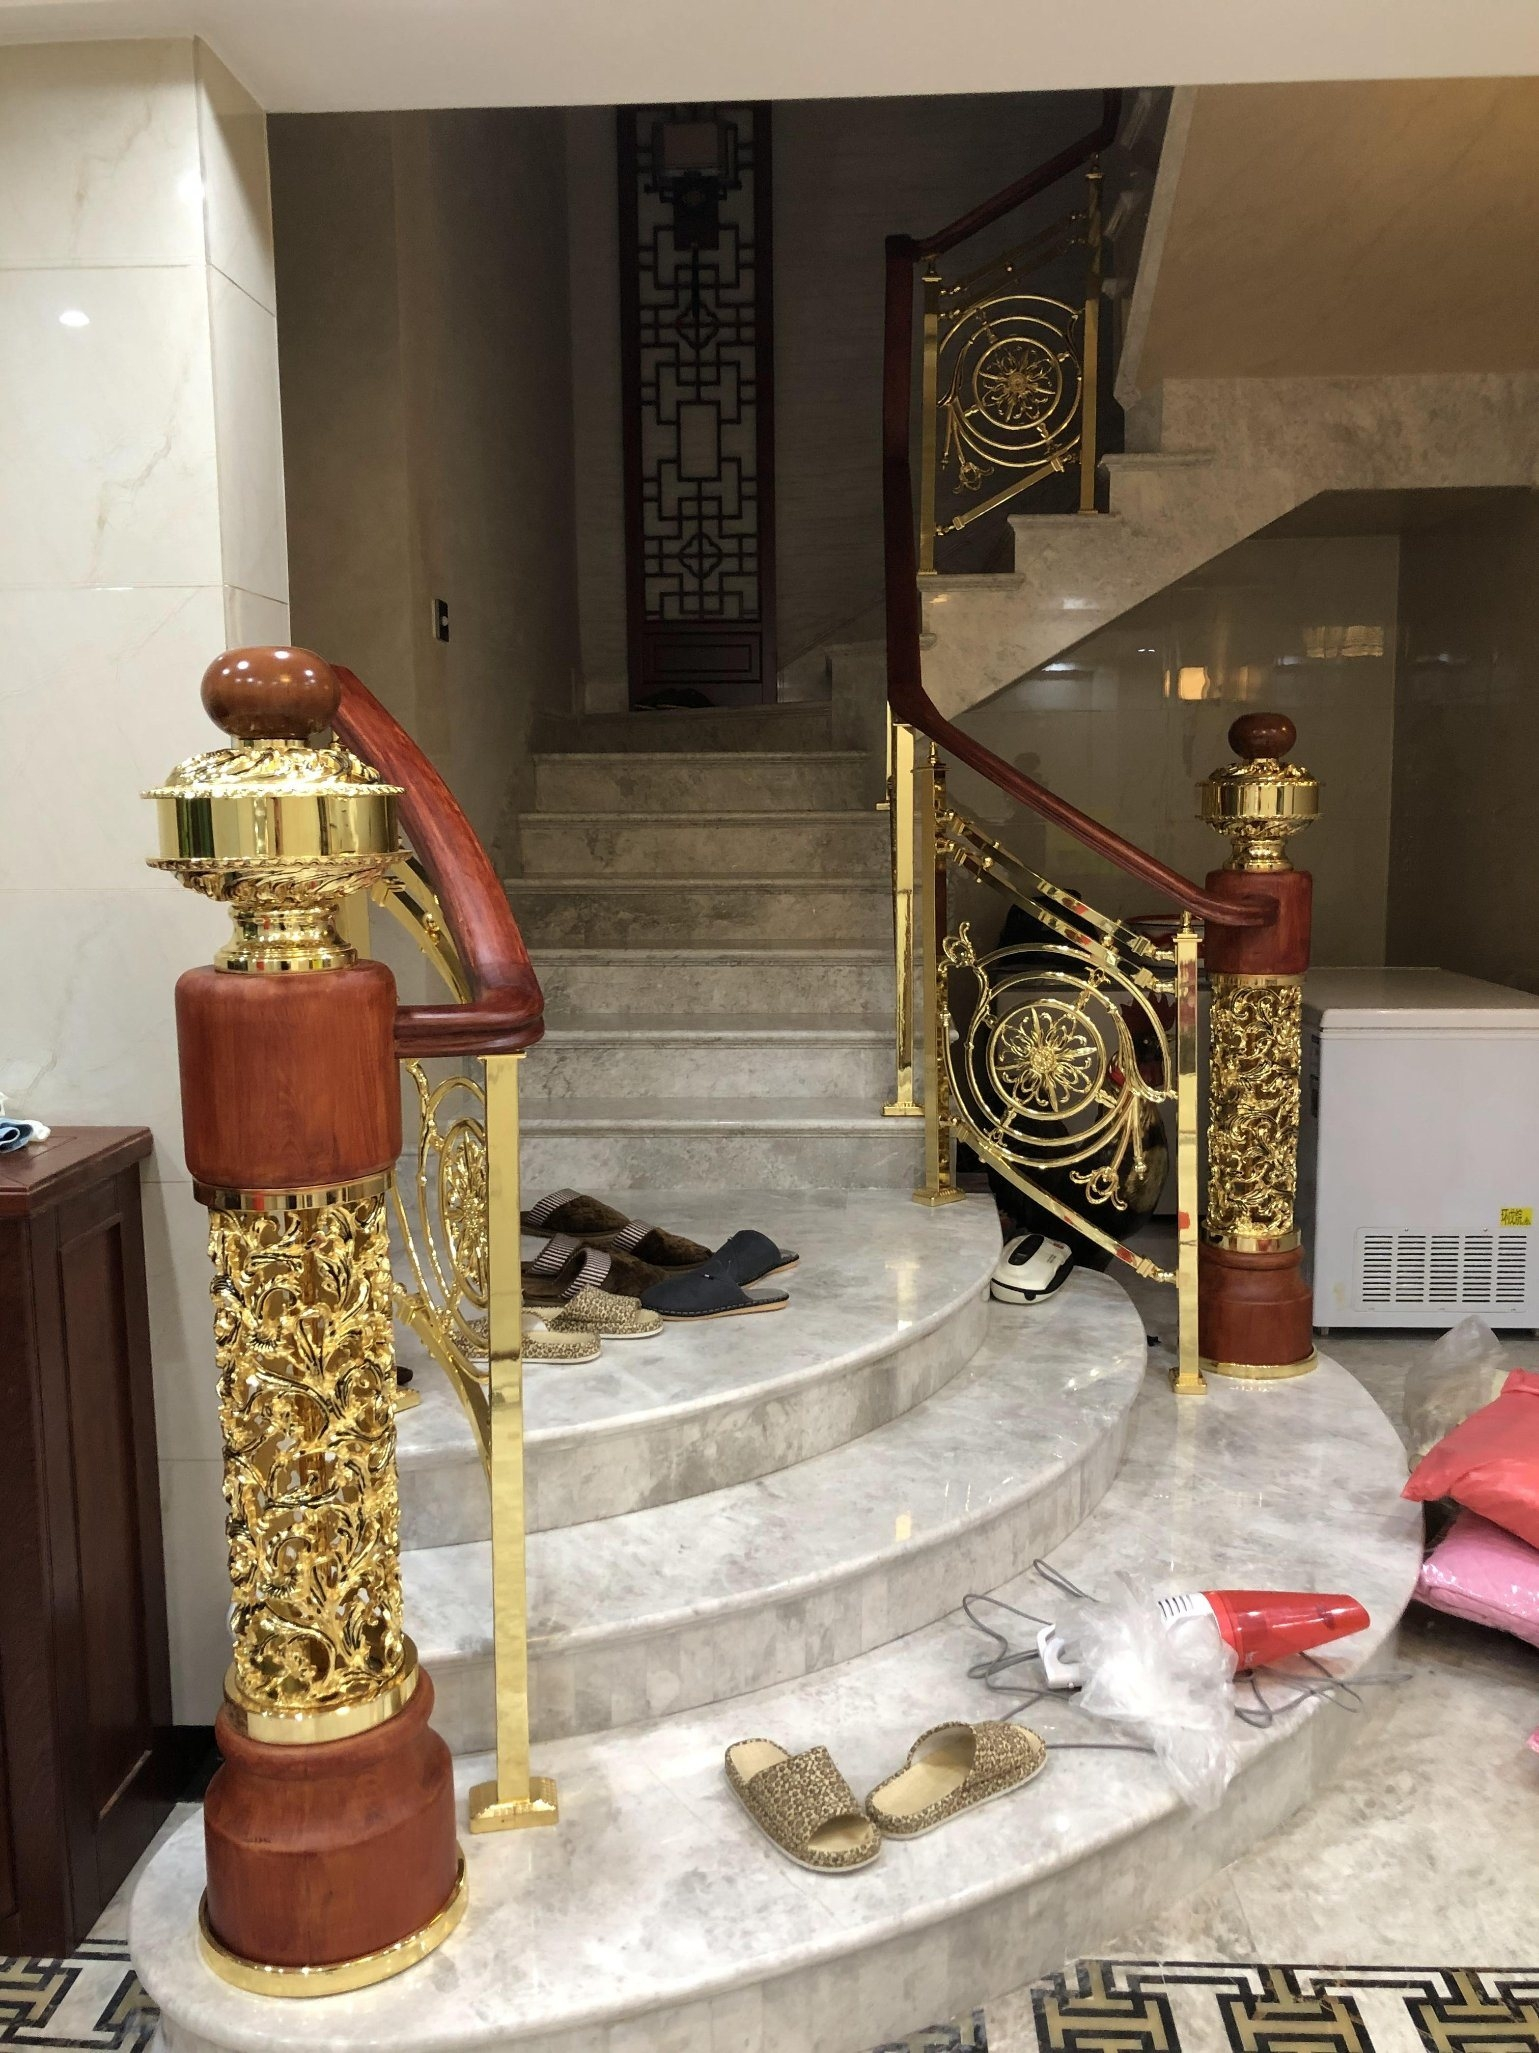 China Zinc Alloy Staircase Handrail Newel Post Columns China   Handrail To Newel Post   Craftsman Style   Indoor Railing   Wood   Gray Stain   White Oak